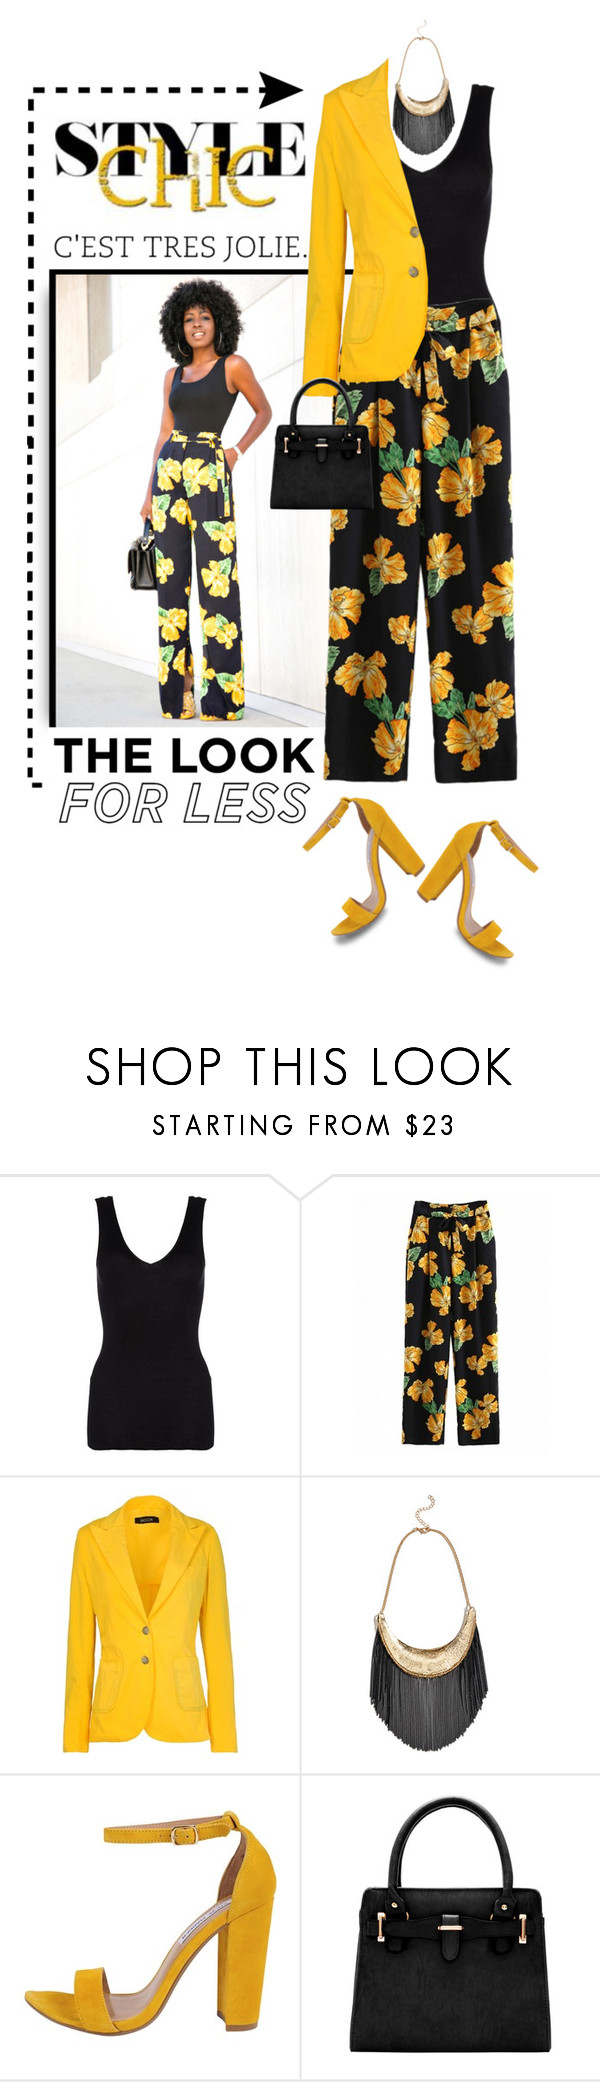 """""""Looking So Lovely"""" by shortyluv718 ❤ liked on Polyvore featuring Hanro, Basicon, GUESS by Marciano, Steve Madden, floralpants and floralprint"""